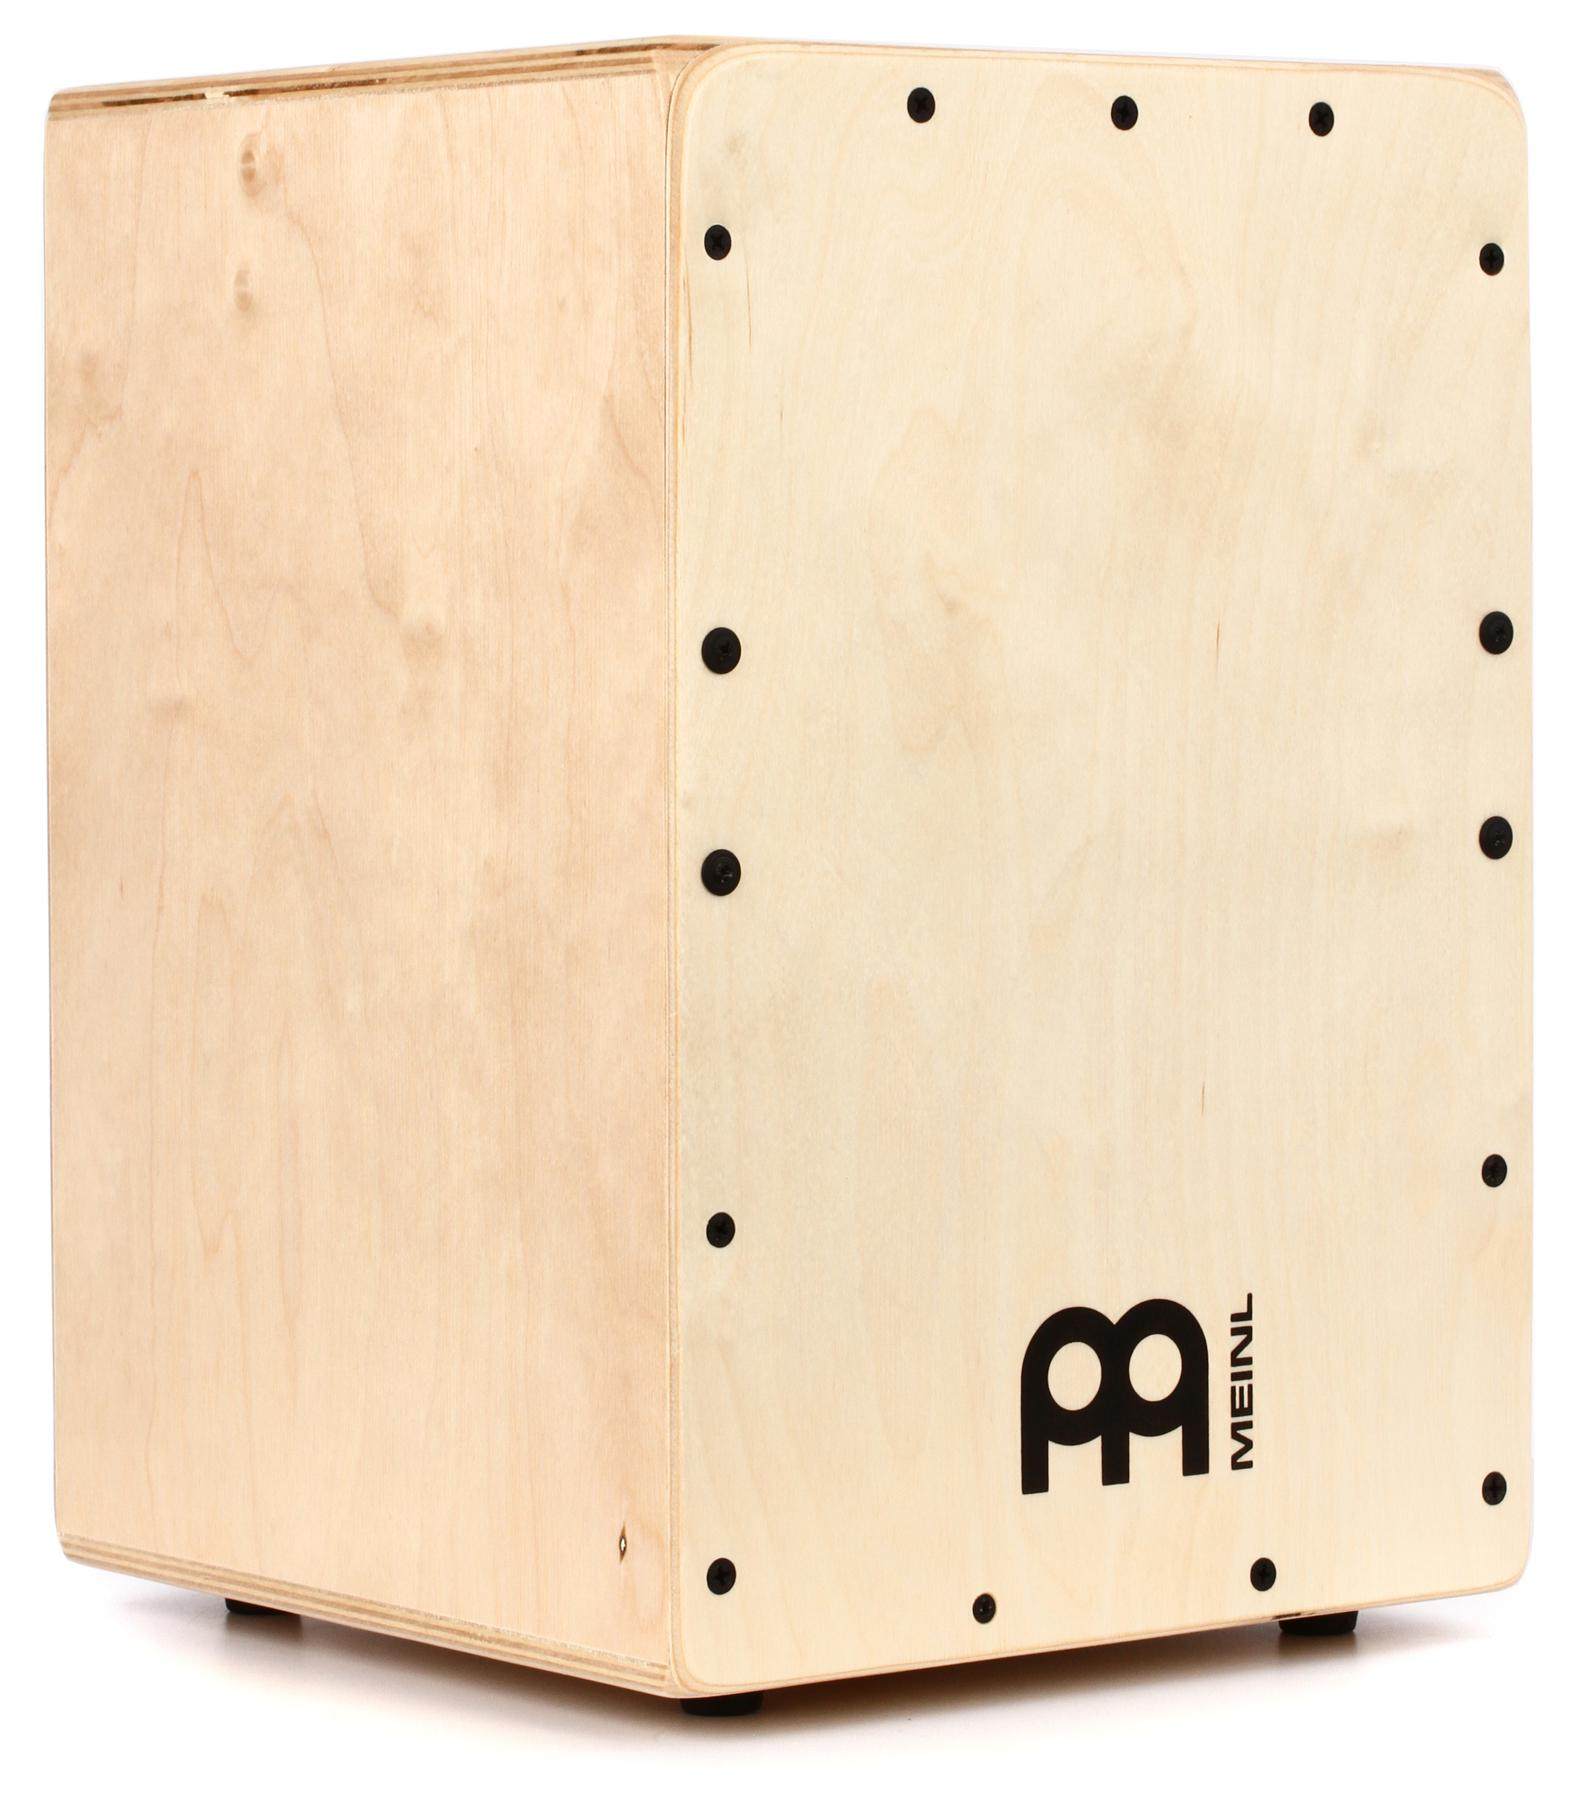 Meinl Percussion Jam Cajon